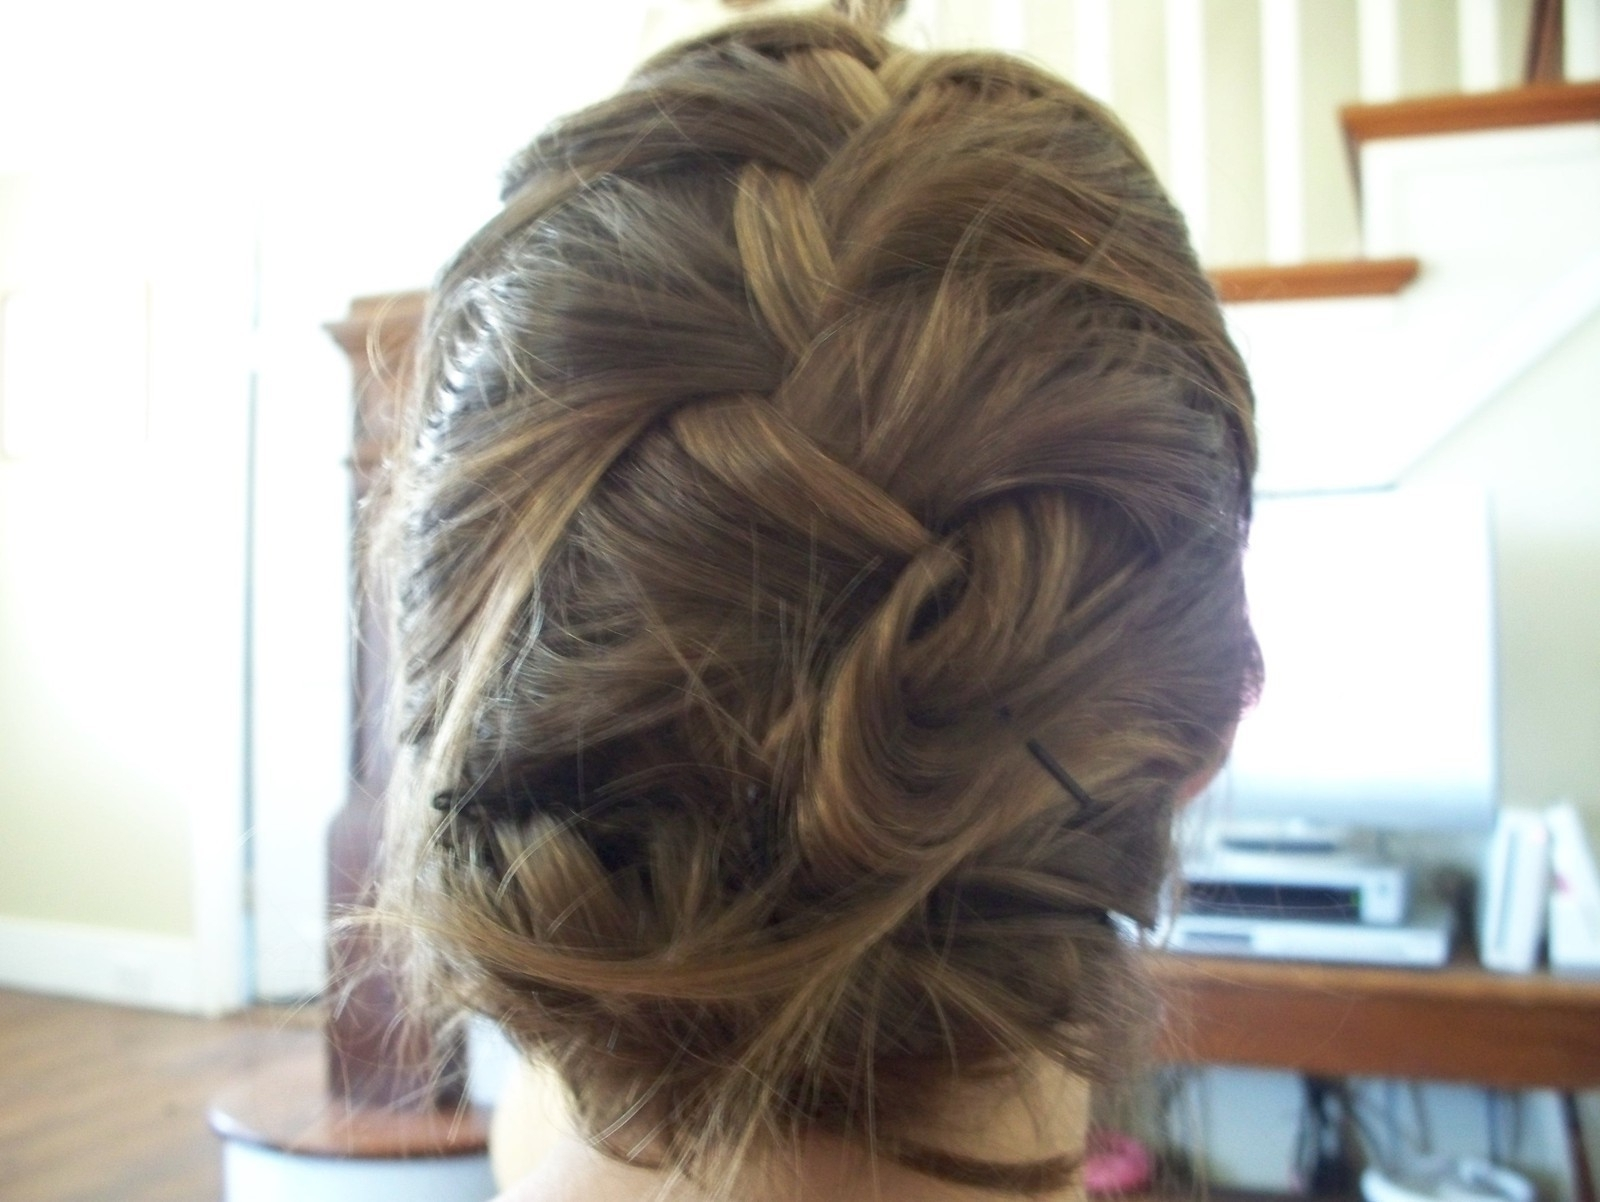 French Braid Up Do · How To Style A French Braid · Hair Styling On With Widely Used Pinned Up French Plaits Hairstyles (View 8 of 15)